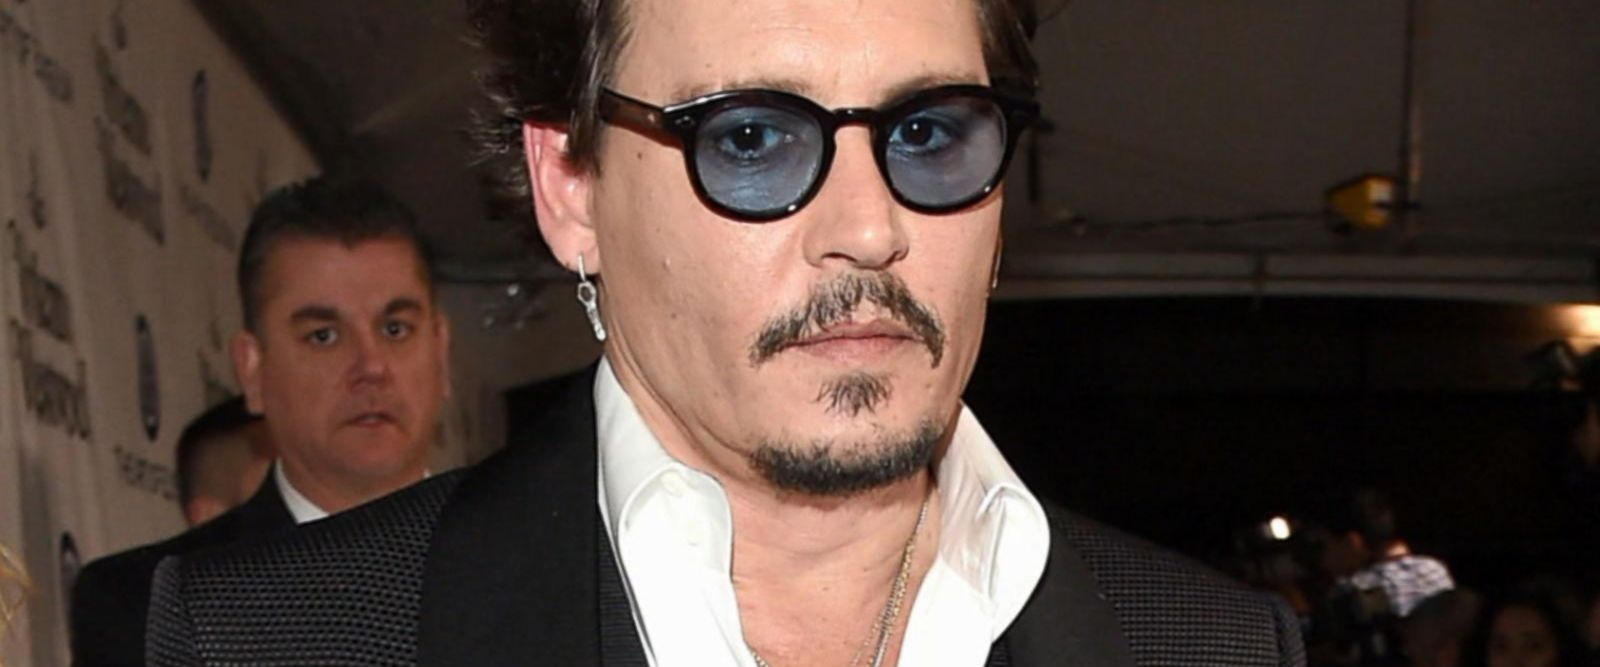 VIDEO: Johnny Depp claims ex-managers trying to 'publicly vilify' him